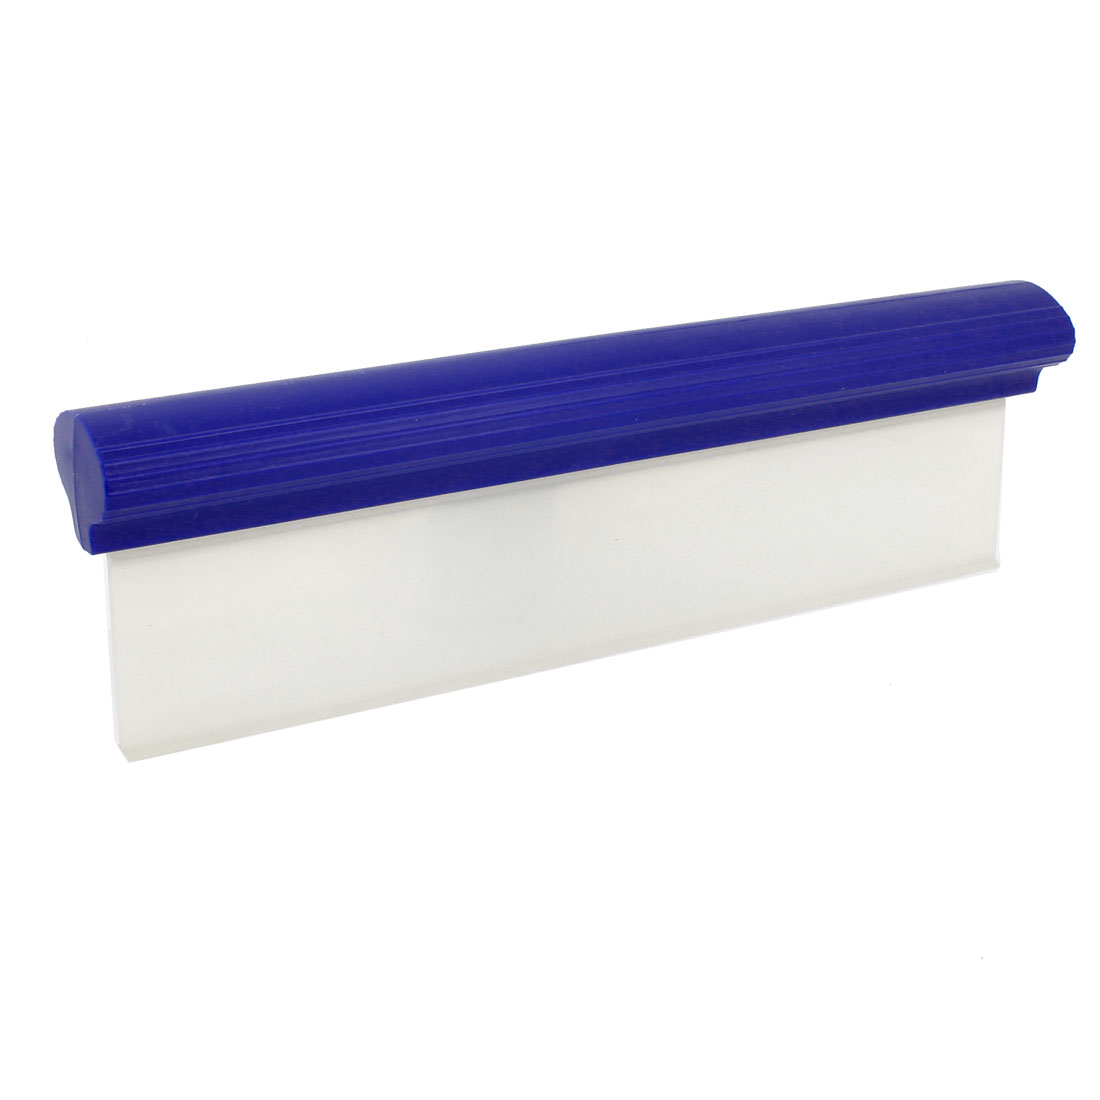 30cm Long Silicone Blade Window Film Tint Bubble Scraper Blue for Car